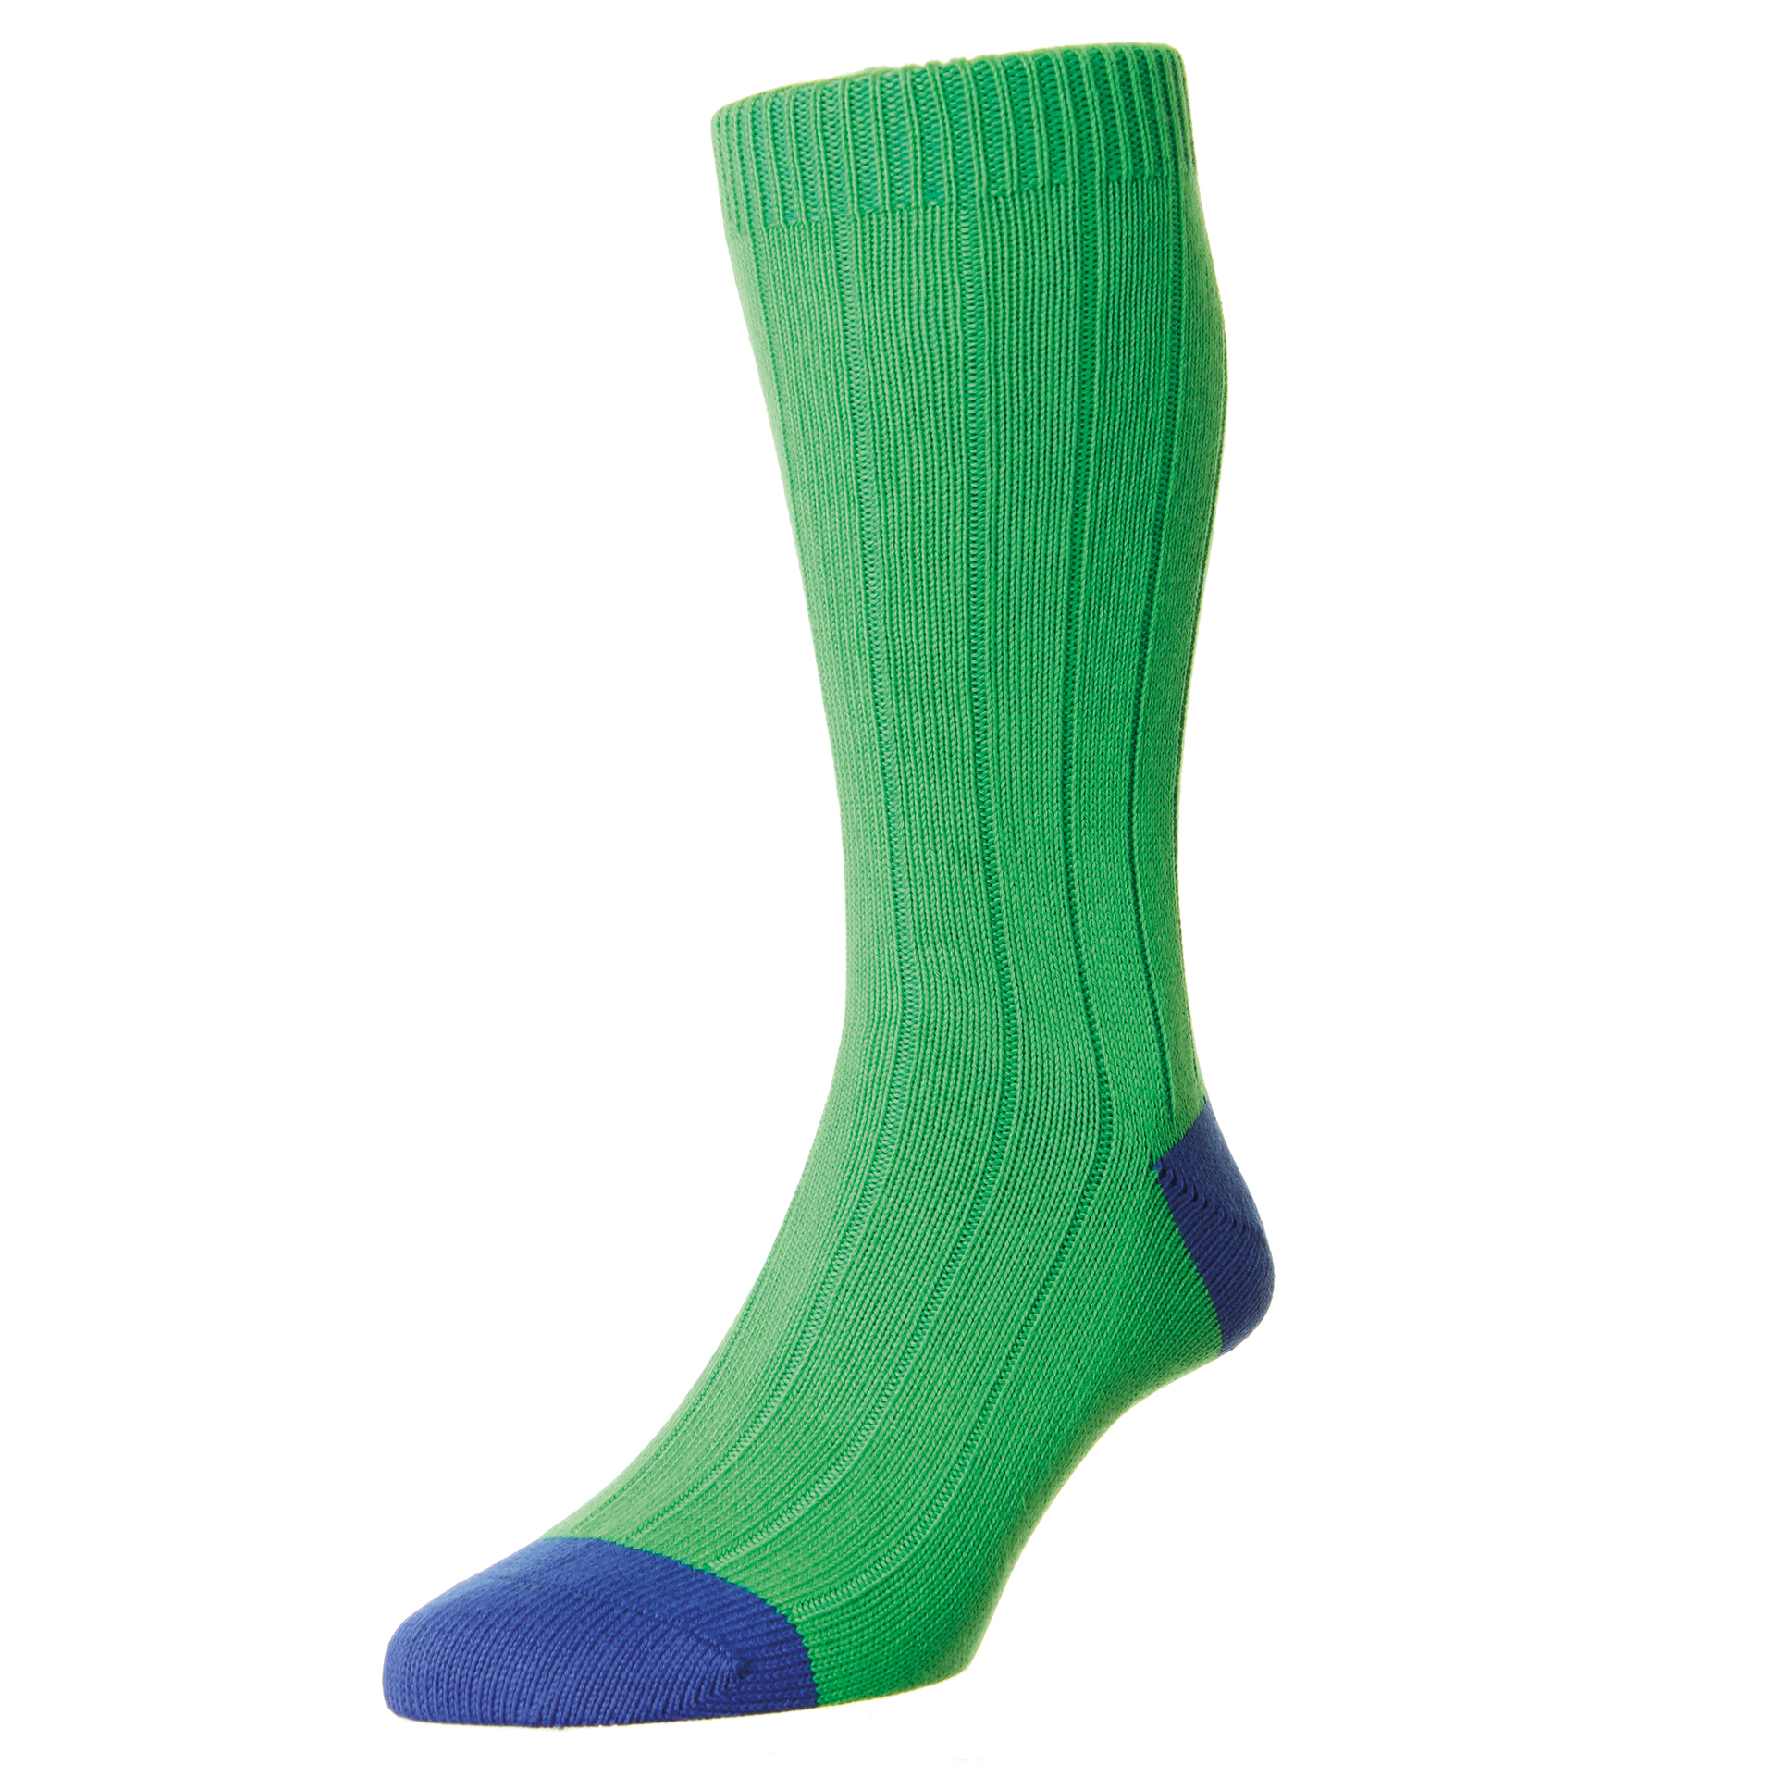 LAUNCHING OCTOBER 2016  RUG-EMR-PLN - Rugby Emerald Chunky Cotton Sock  RRP £TBC  SIZES:Medium (6 - 9 UK), Large (9.5 - 12 UK)  OUT OF STOCK